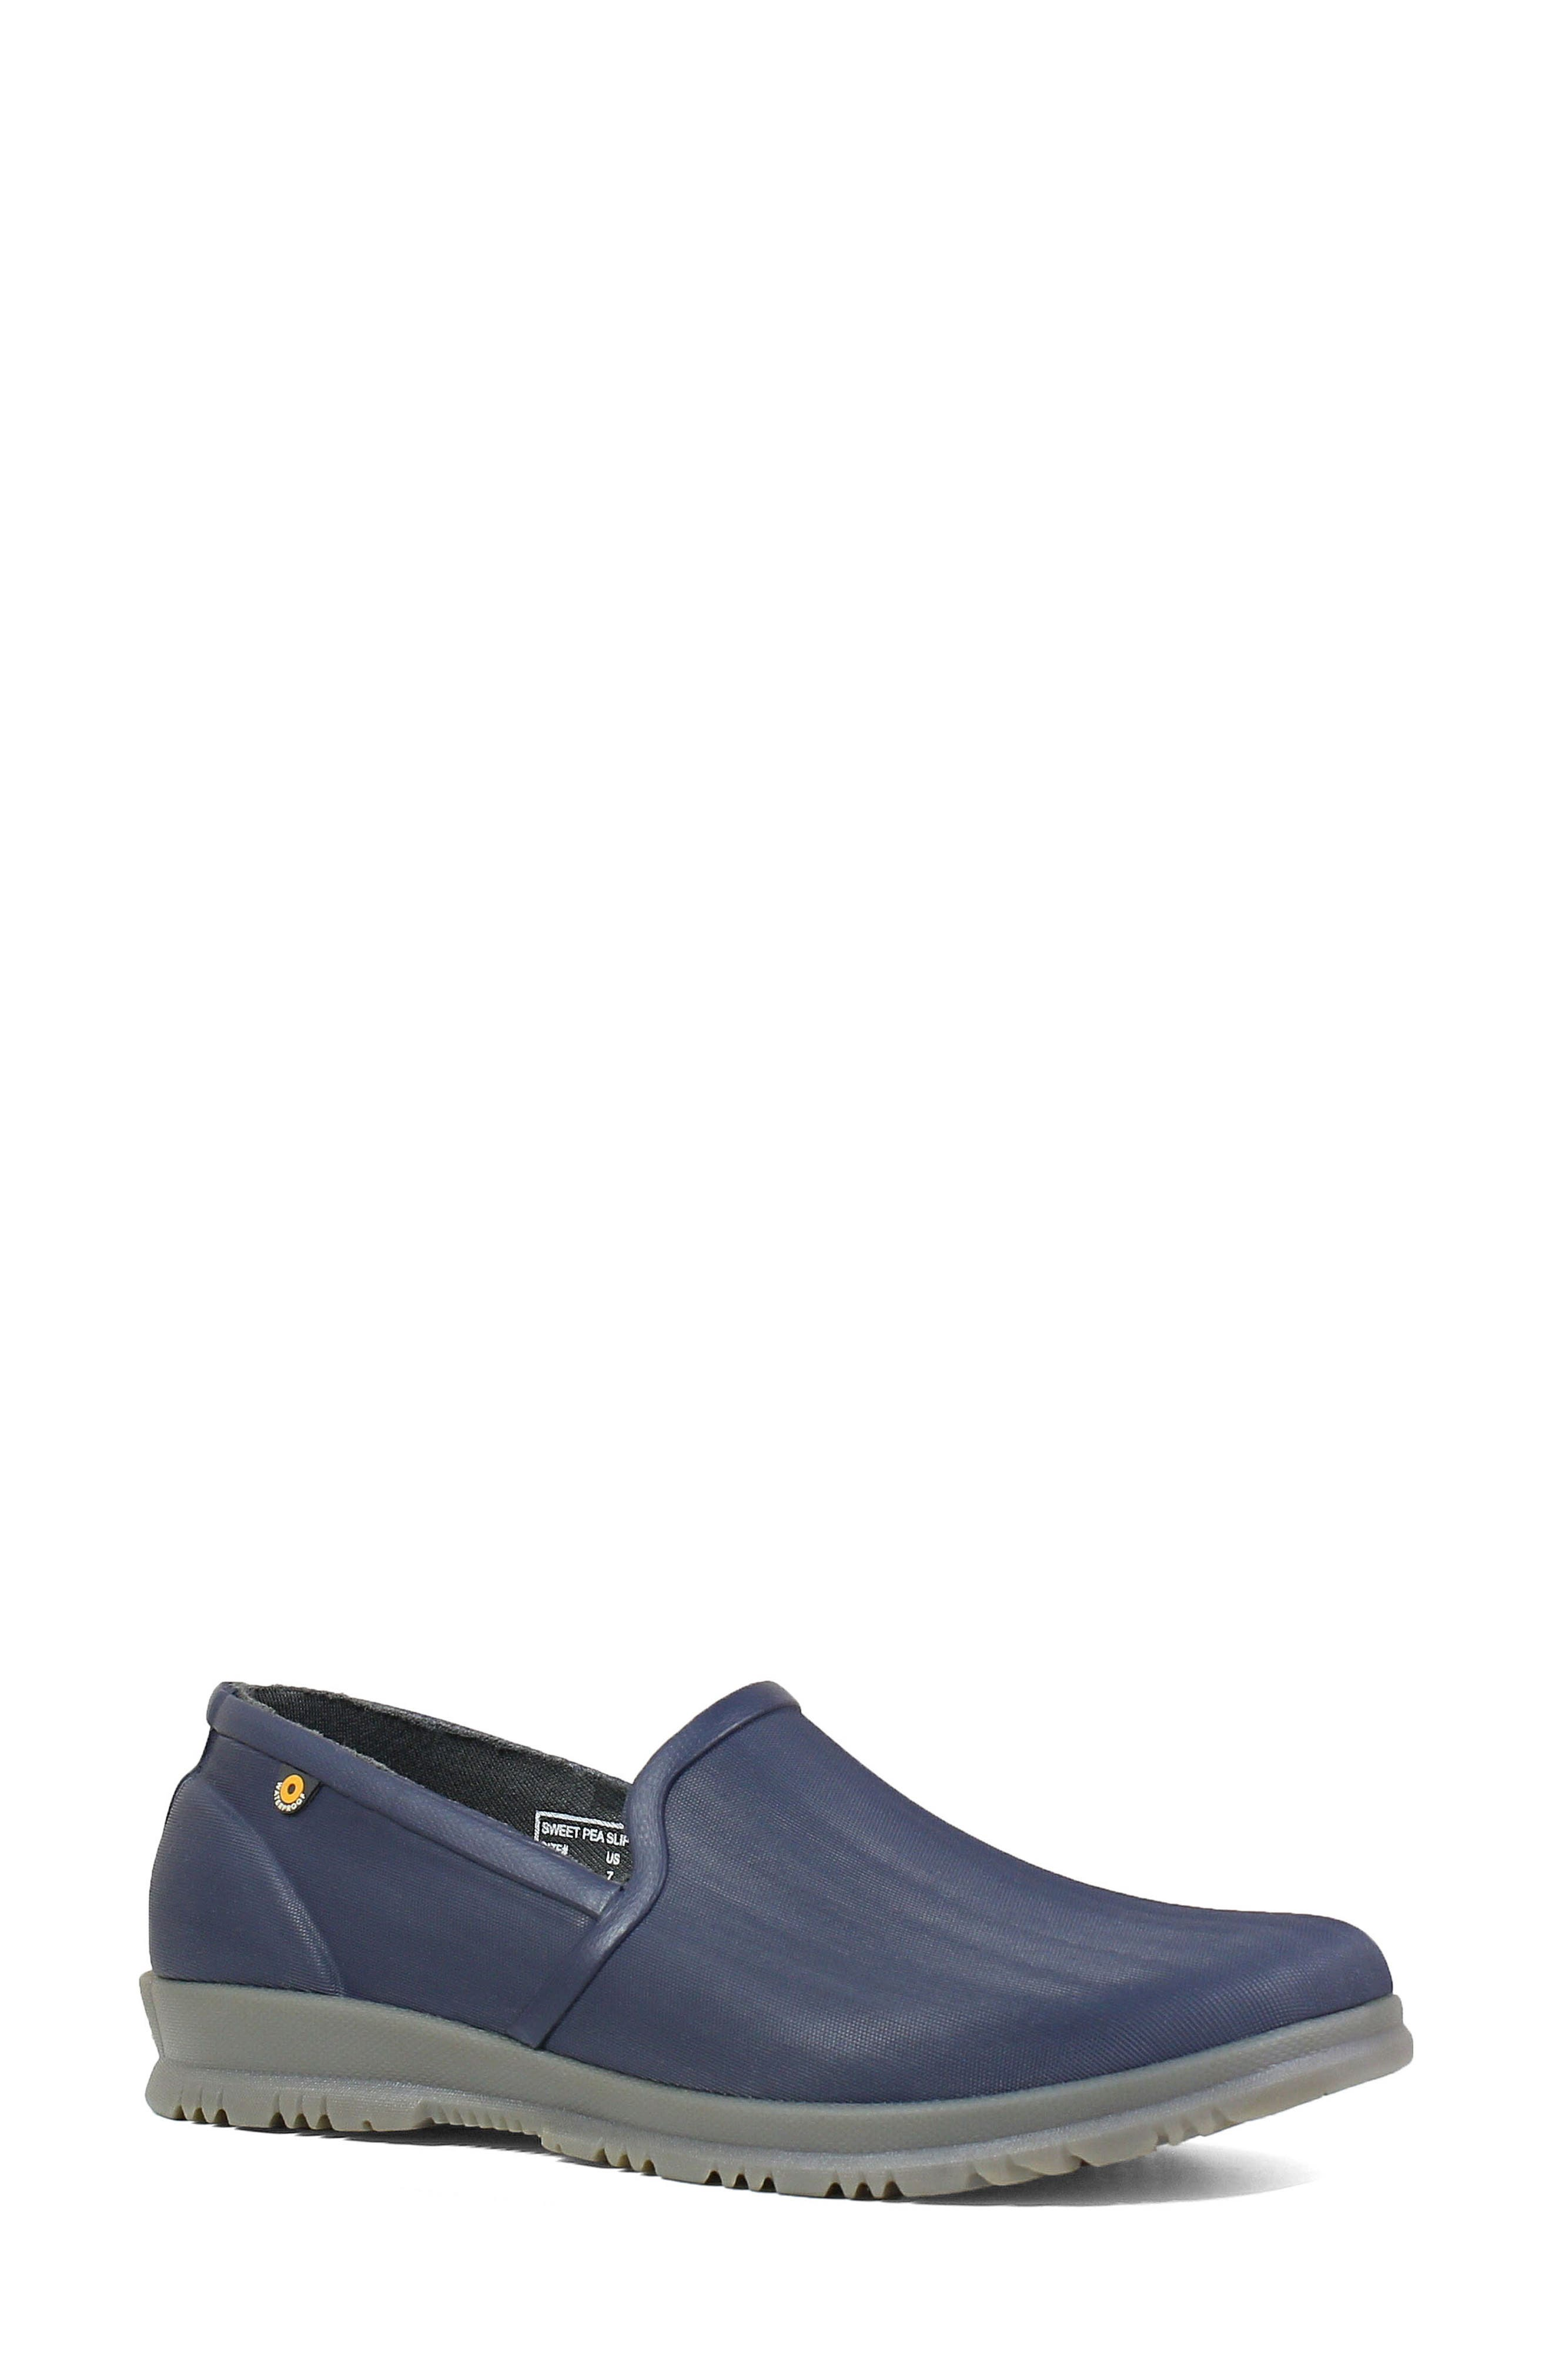 Bogs Sweetpea Waterproof Slip-On Sneaker, Blue